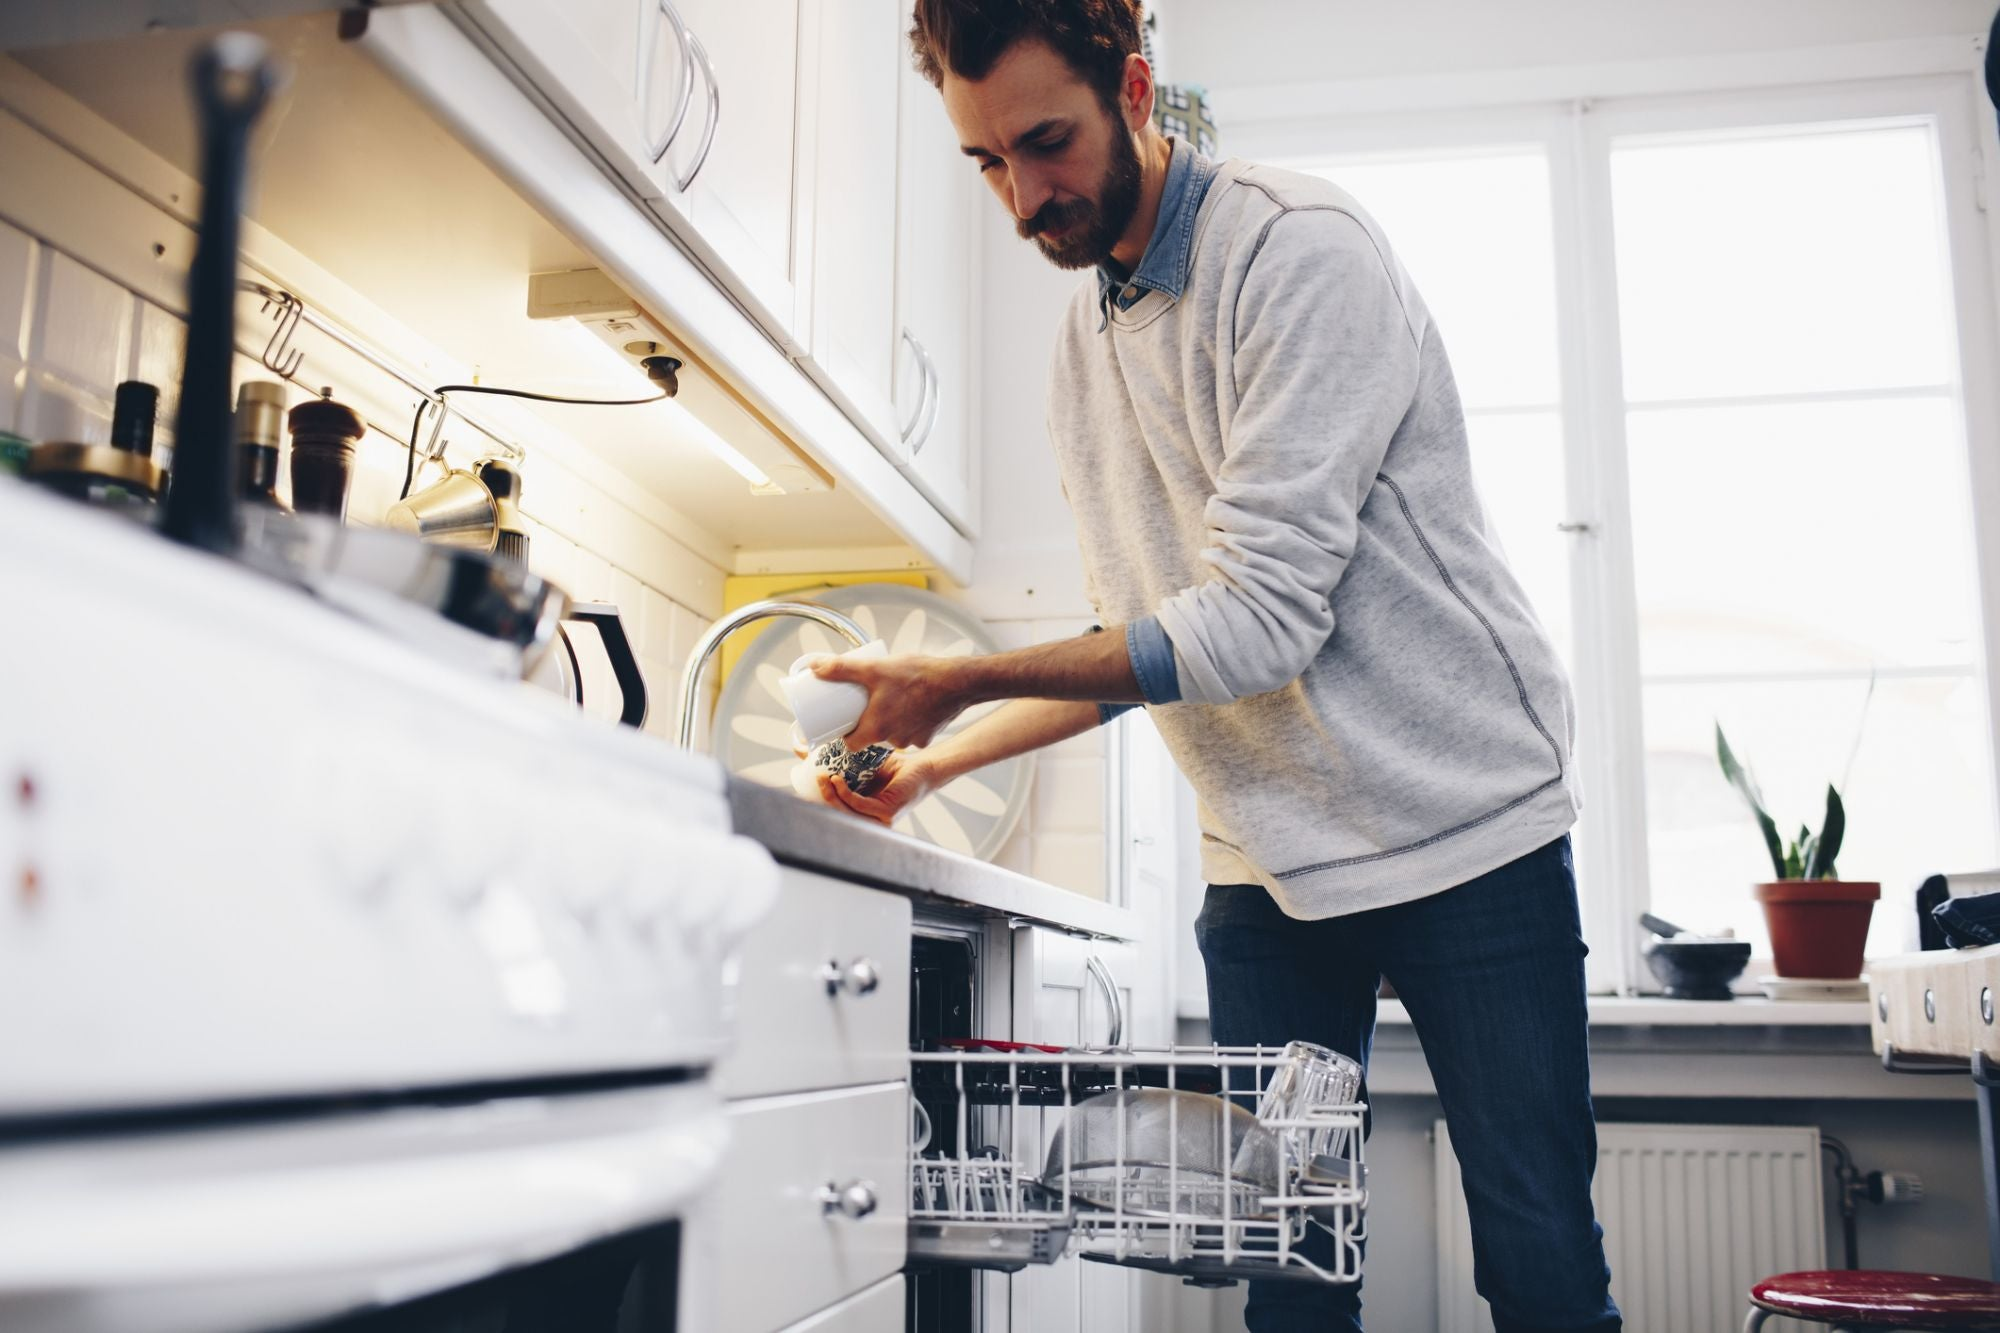 Want a Brilliant Business Idea? Wash the Dishes.